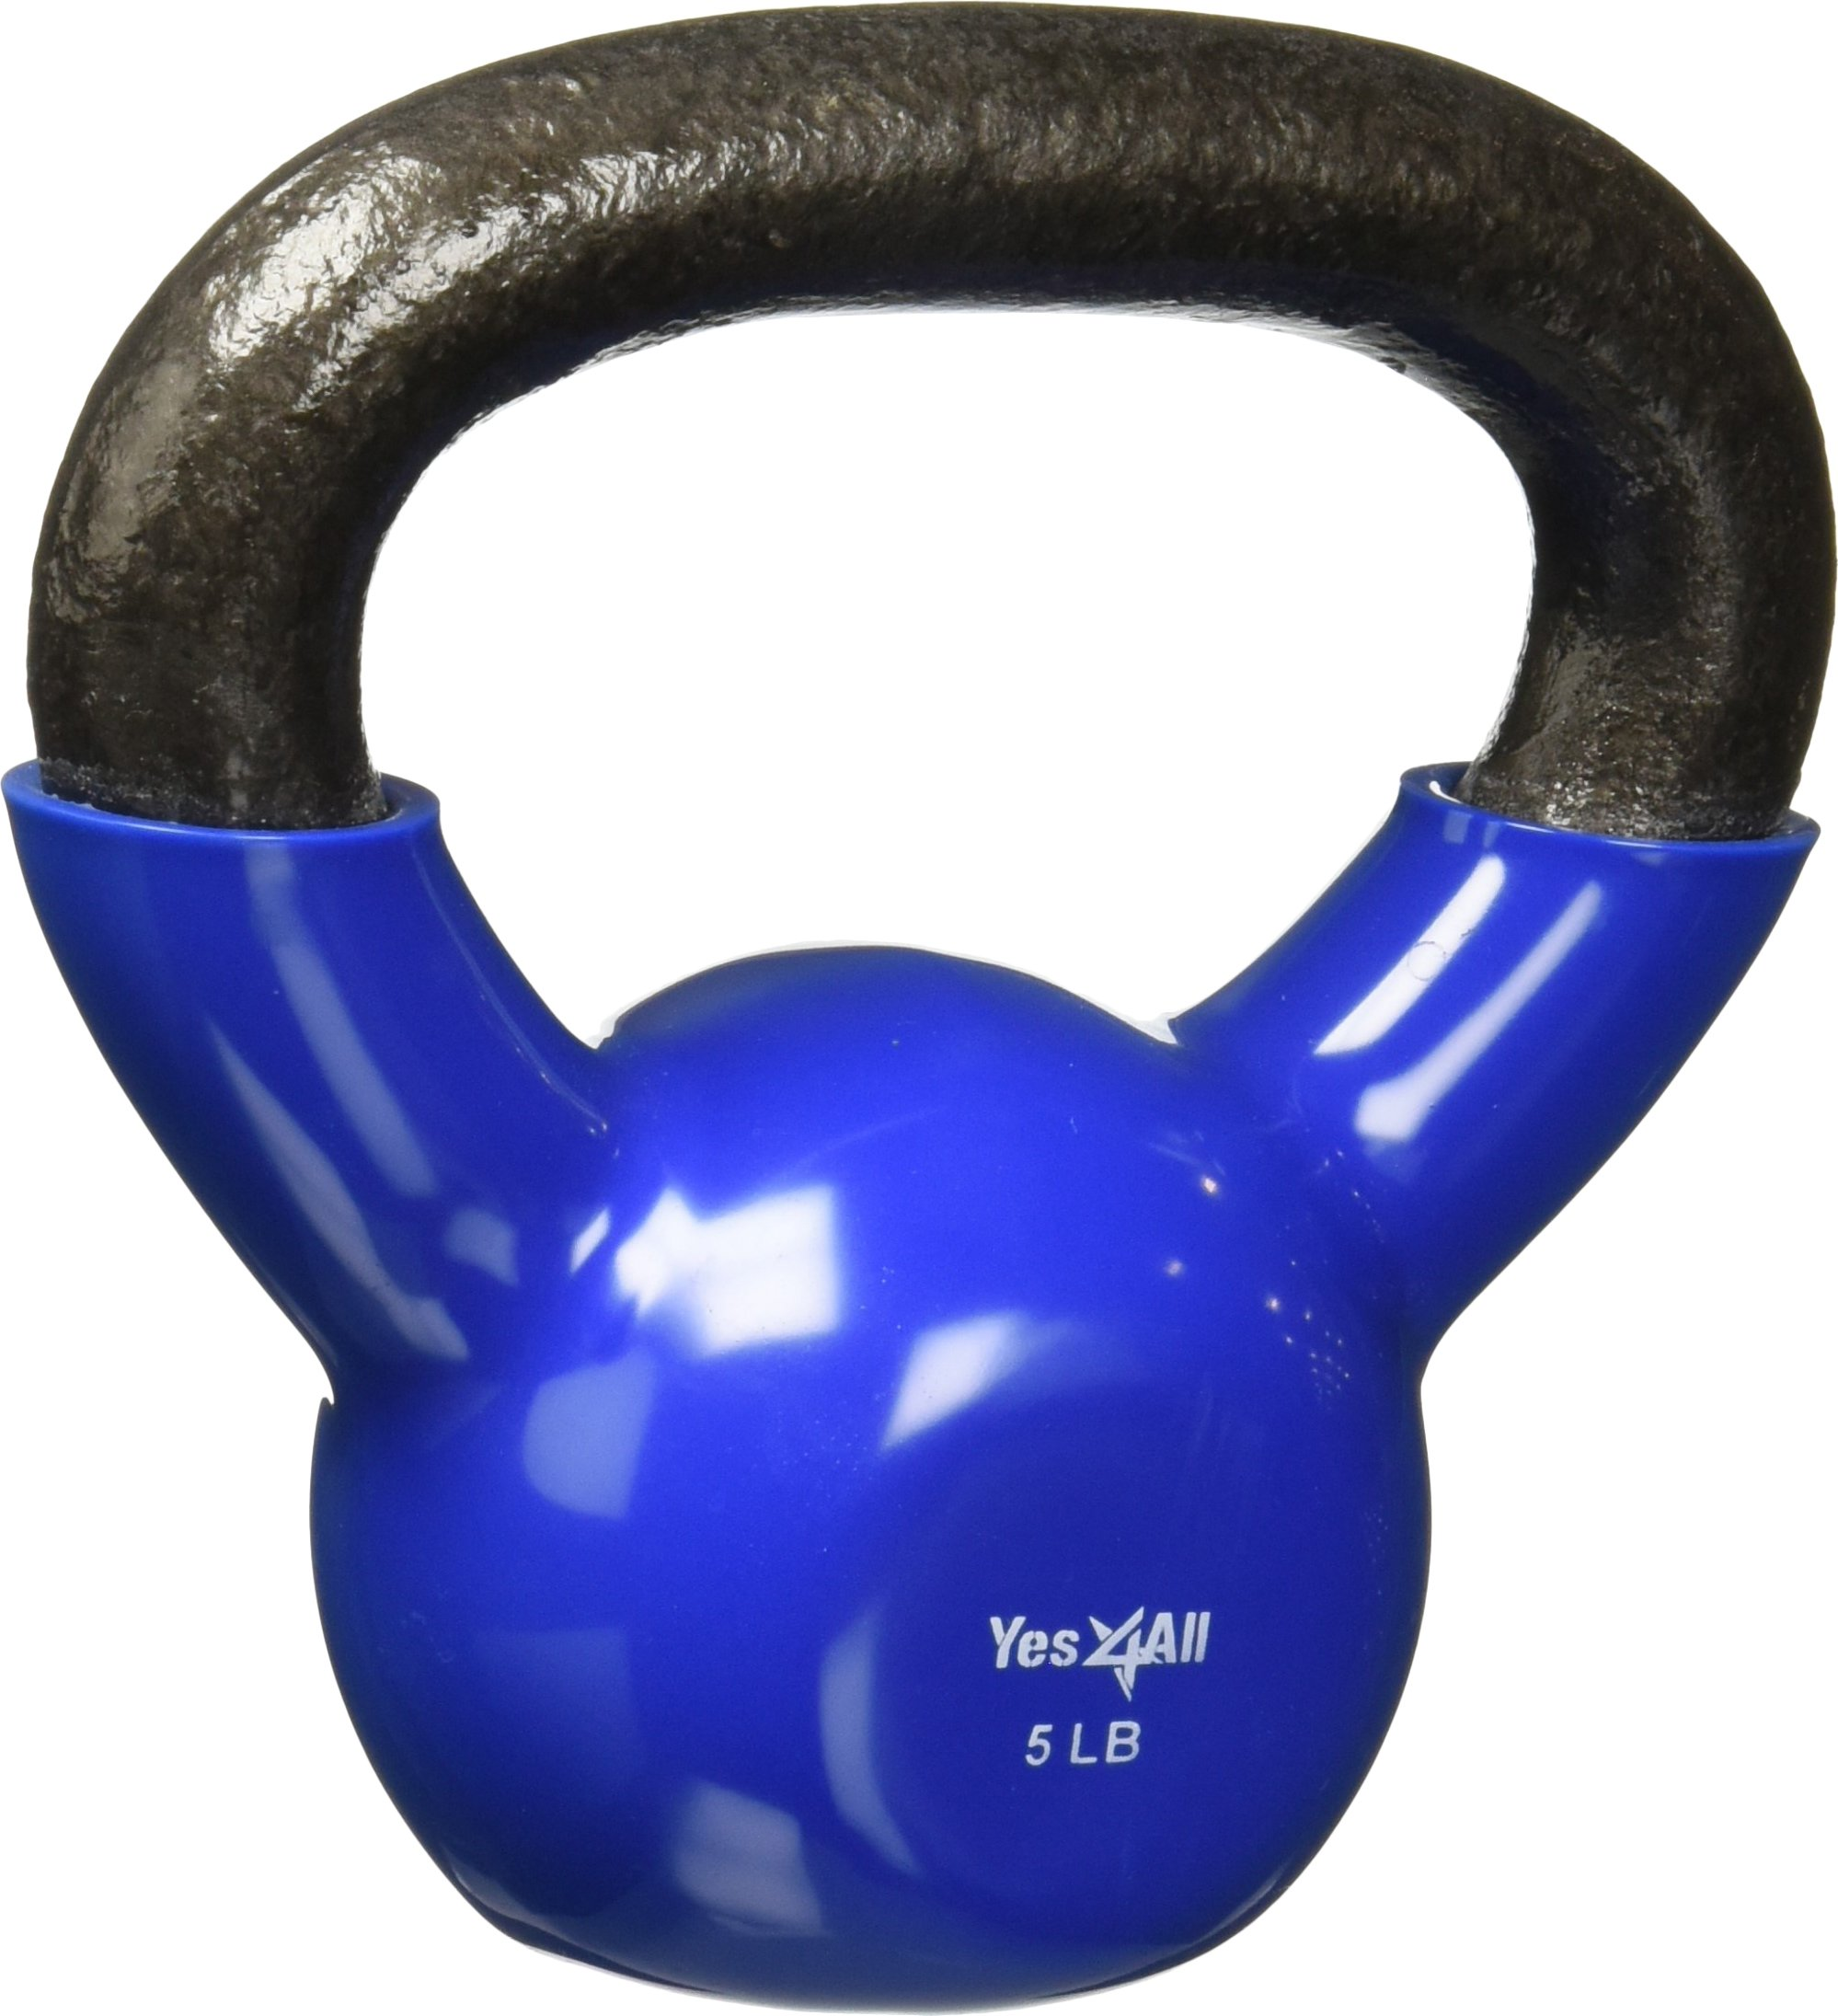 Yes4All Vinyl Coated Kettlebell Weights Set - Great for Full Body Workout and Strength Training - Vinyl Kettlebell 5 lbs by Yes4All (Image #2)